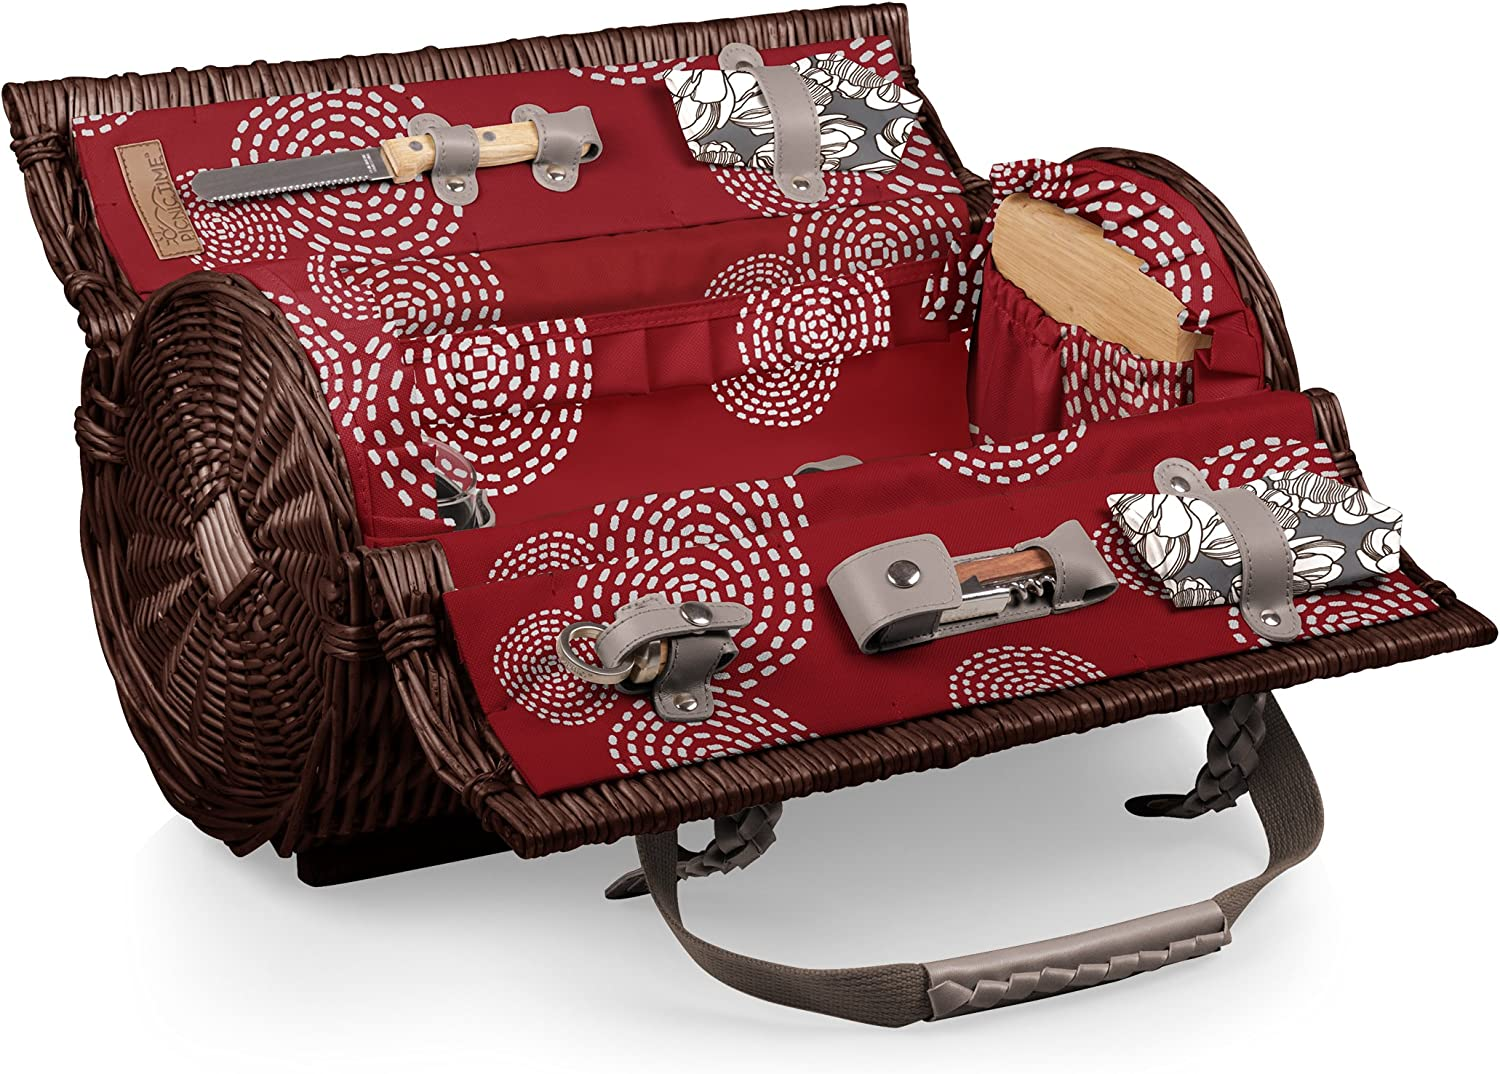 Picnic TIME 'Verona' Insulated Wine Basket with Wine Cheese Service for Two, Harmony Collection